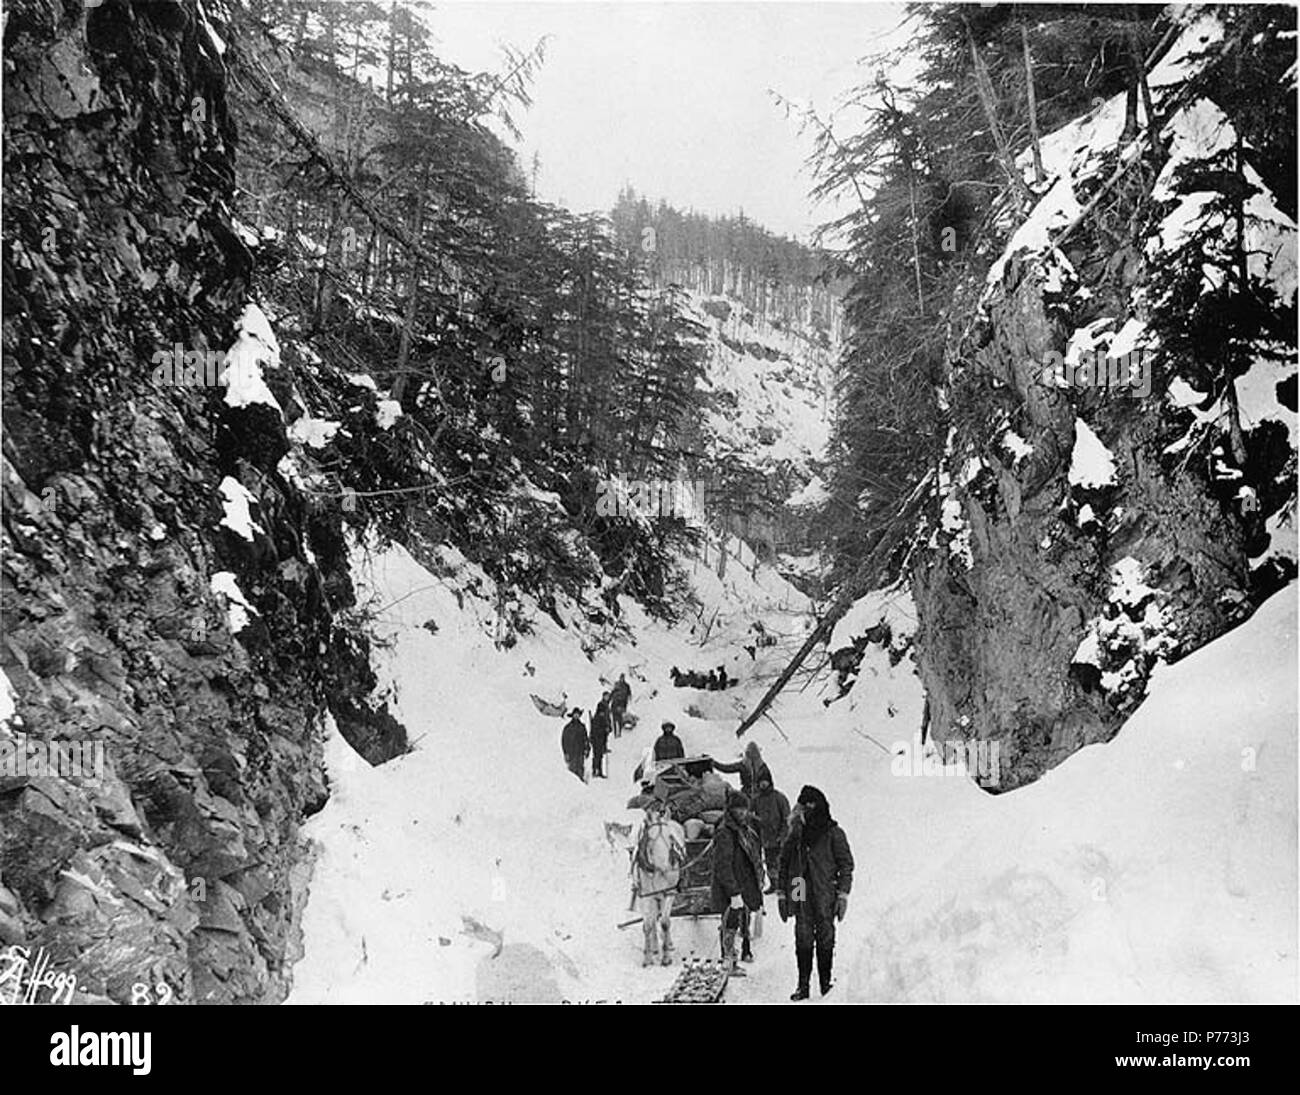 . English: Klondikers with horse drawn sled and supplies at Canyon, Chilkoot Trail, Alaska, 1897. English: Caption on image: 'Canyon Dyea Trail' Original image in Hegg Album 1, page 15 . Klondike Gold Rush. Subjects (LCTGM): Canyons--Alaska; Sled dogs--Alaska; Sleds--Alaska; Horses--Alaska Subjects (LCSH): Chilkoot Trail; Trails--Alaska  . 1897 7 Klondikers with horse drawn sled and supplies at Canyon, Chilkoot Trail, Alaska, 1897 (HEGG 609) - Stock Image